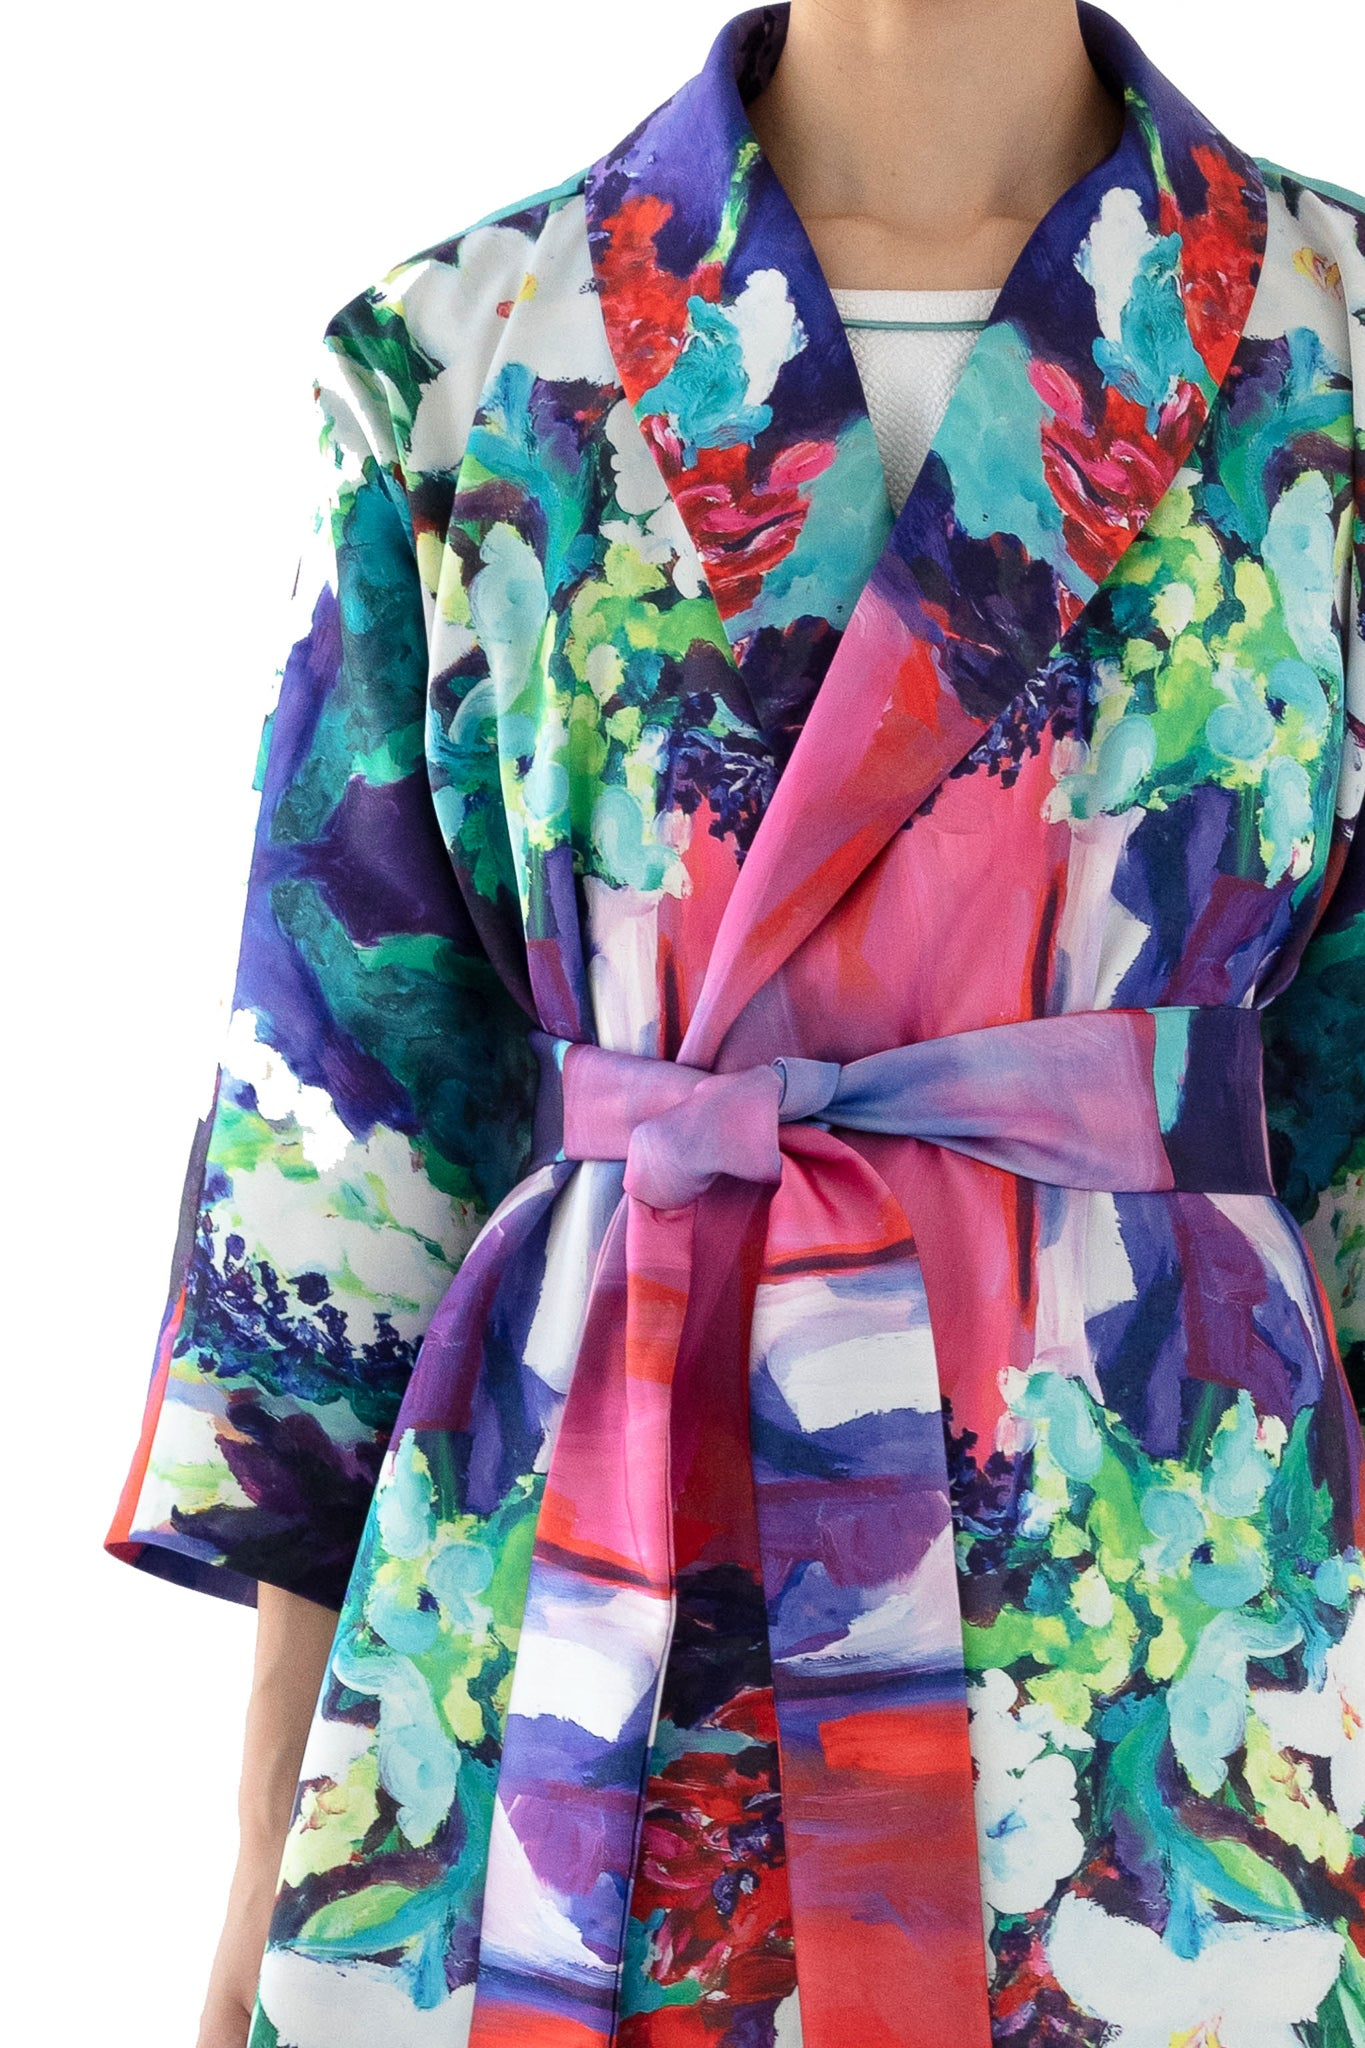 Close up of floral print wrap dress